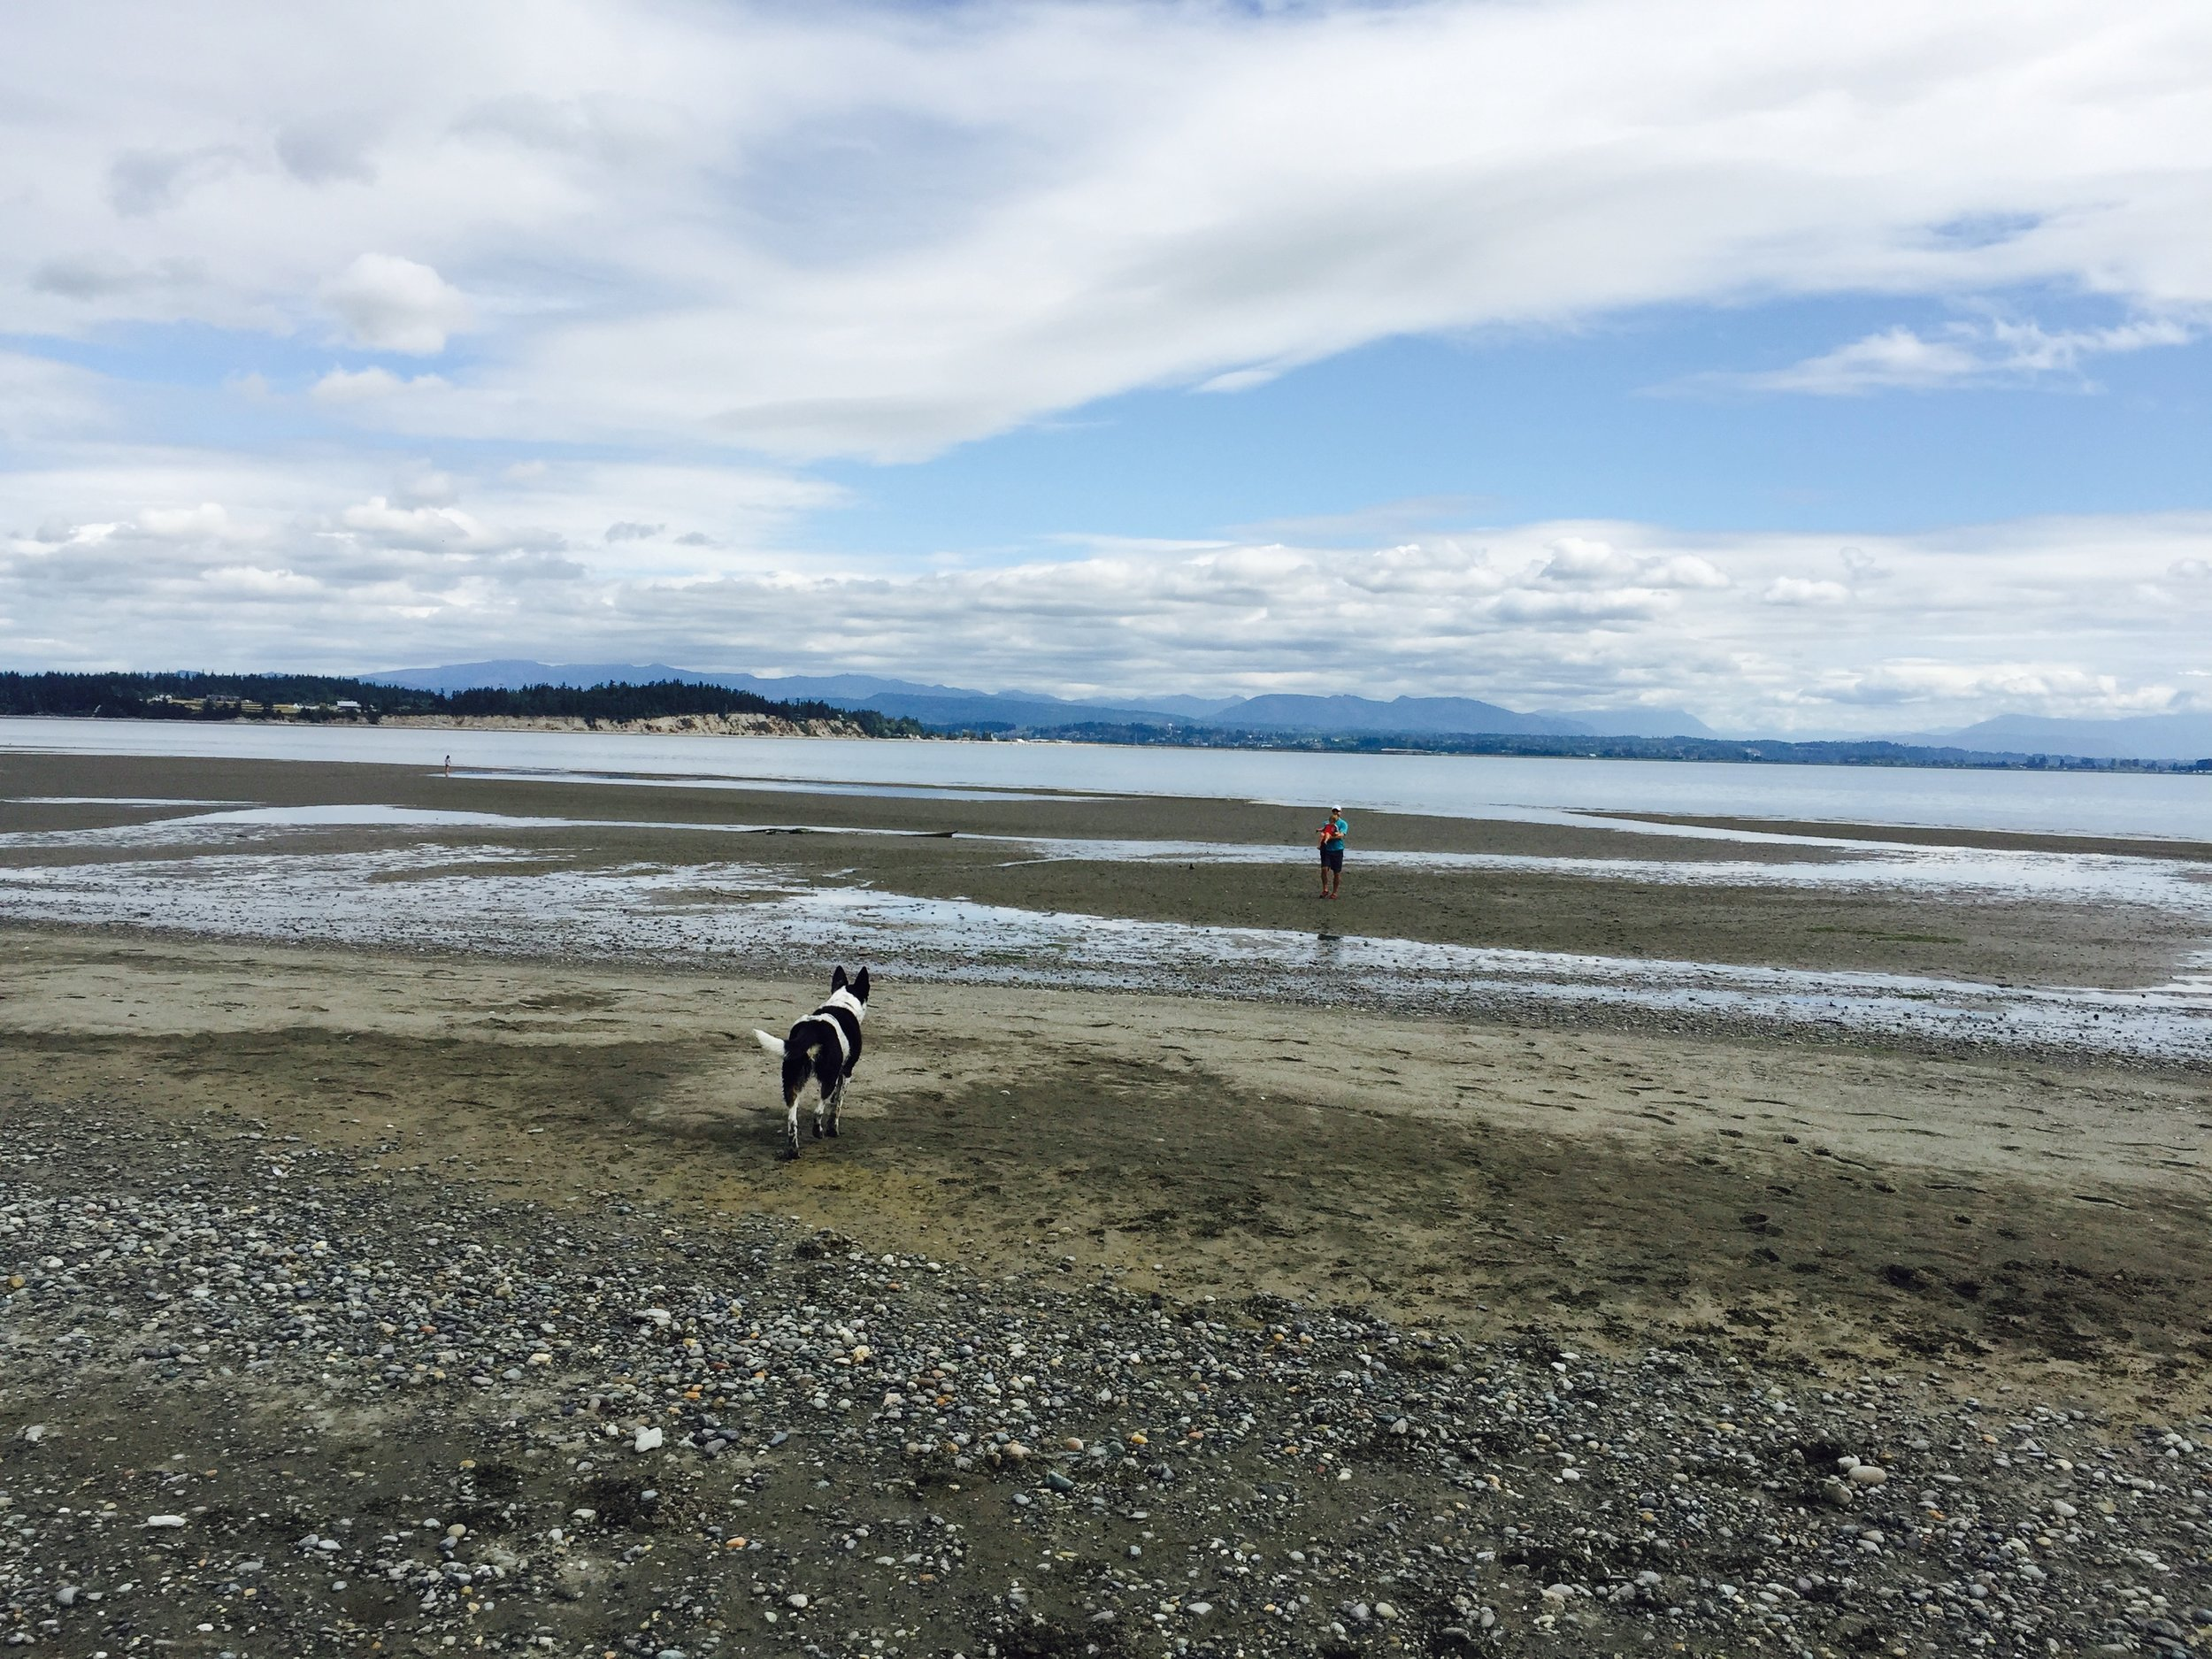 Take a walk on Iverson Beach, located on Camano Island